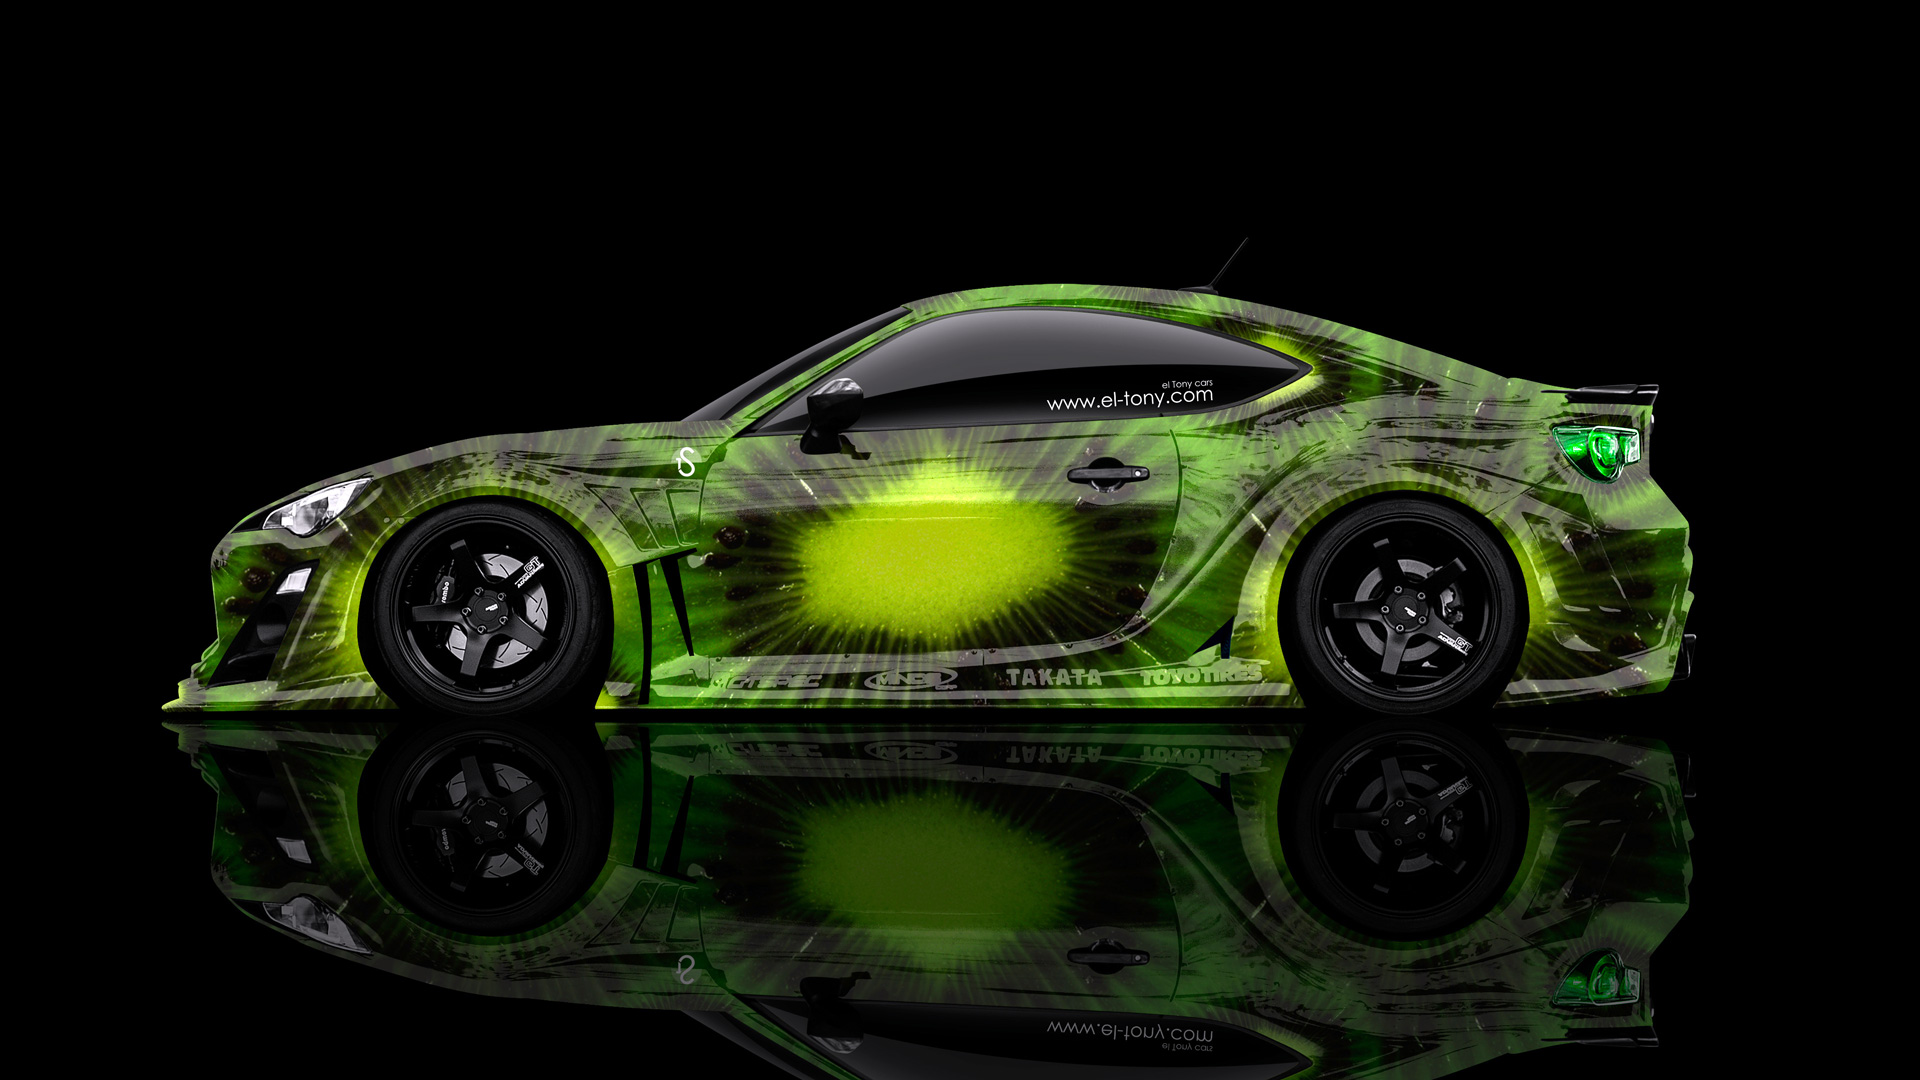 Charmant Toyota GT86 JDM Side Kiwi Aerography Car 2014